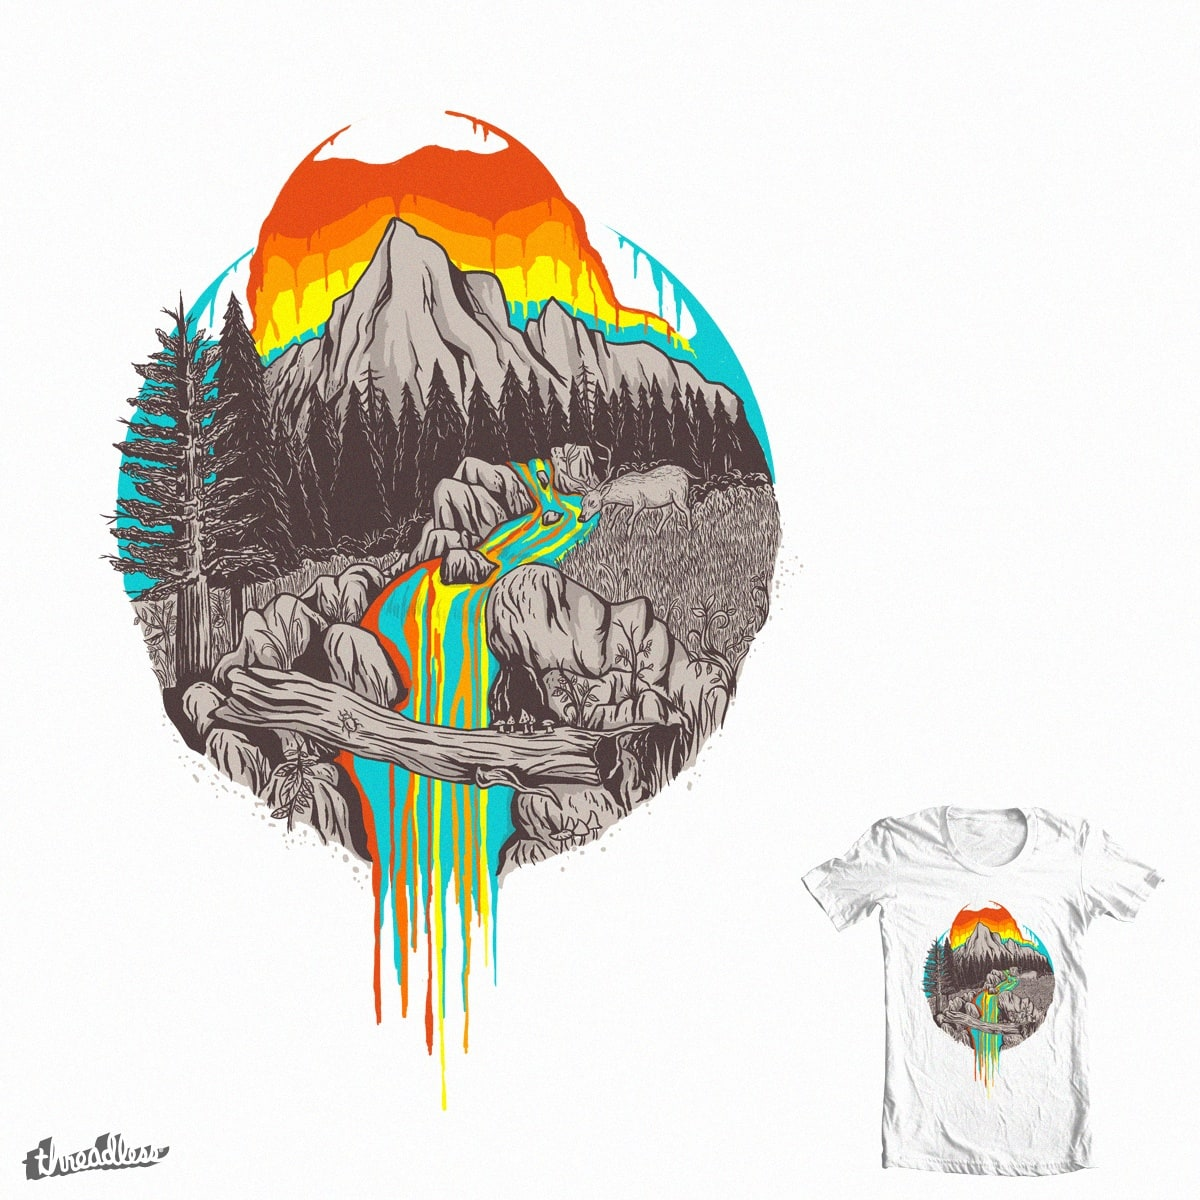 meltingsun by moty_moty_moty on Threadless